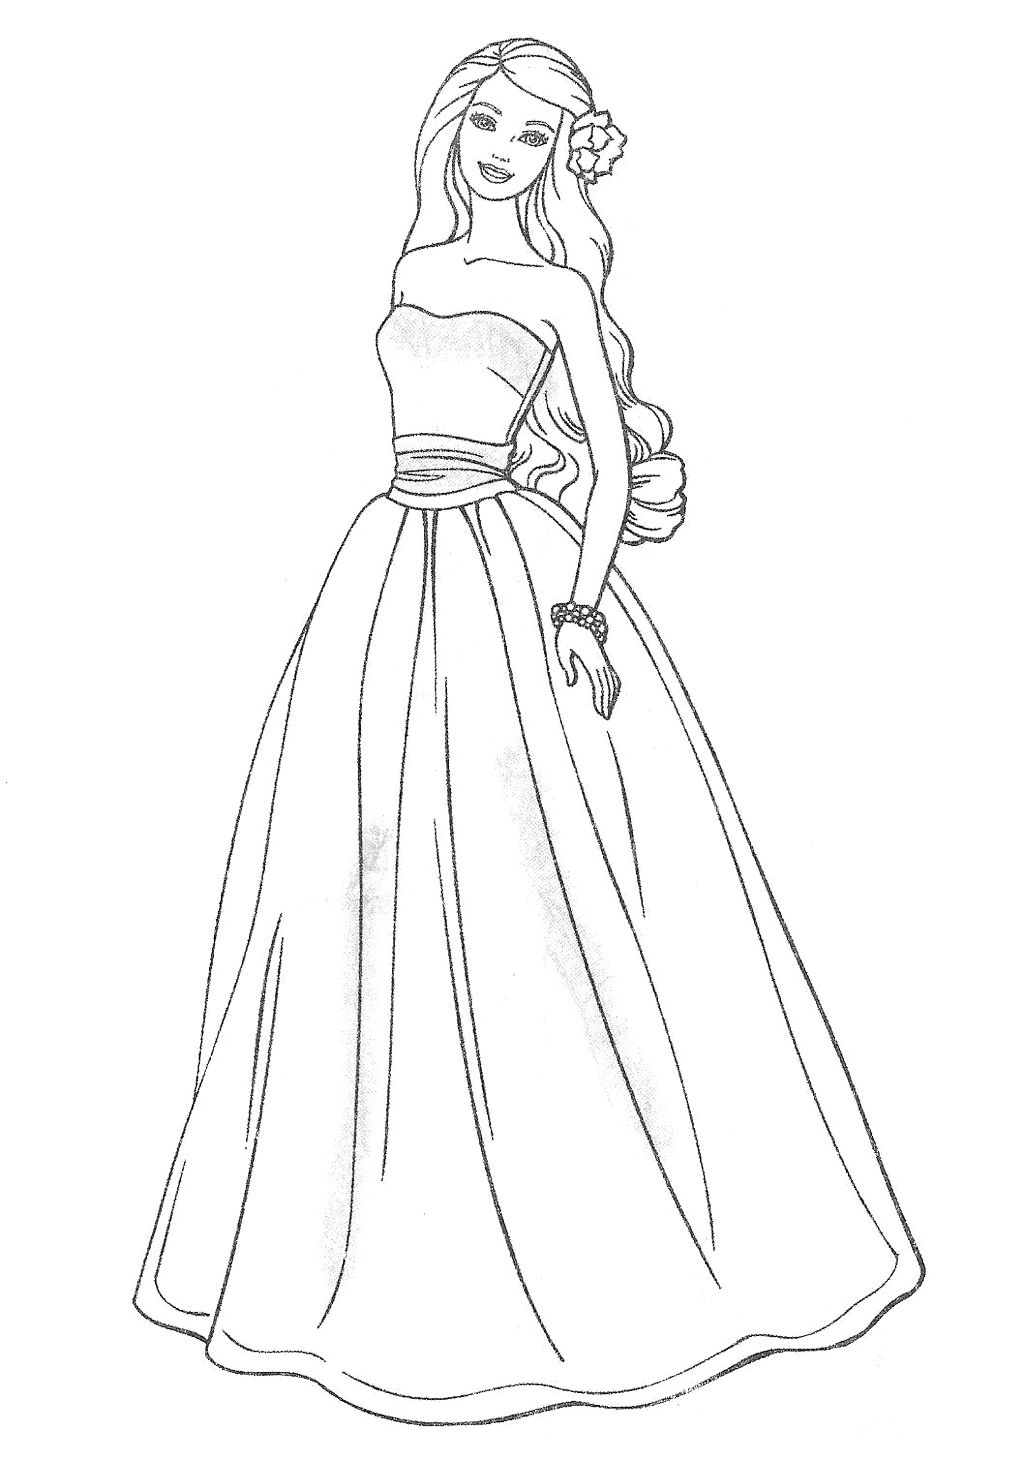 Girl In Dress Coloring Page